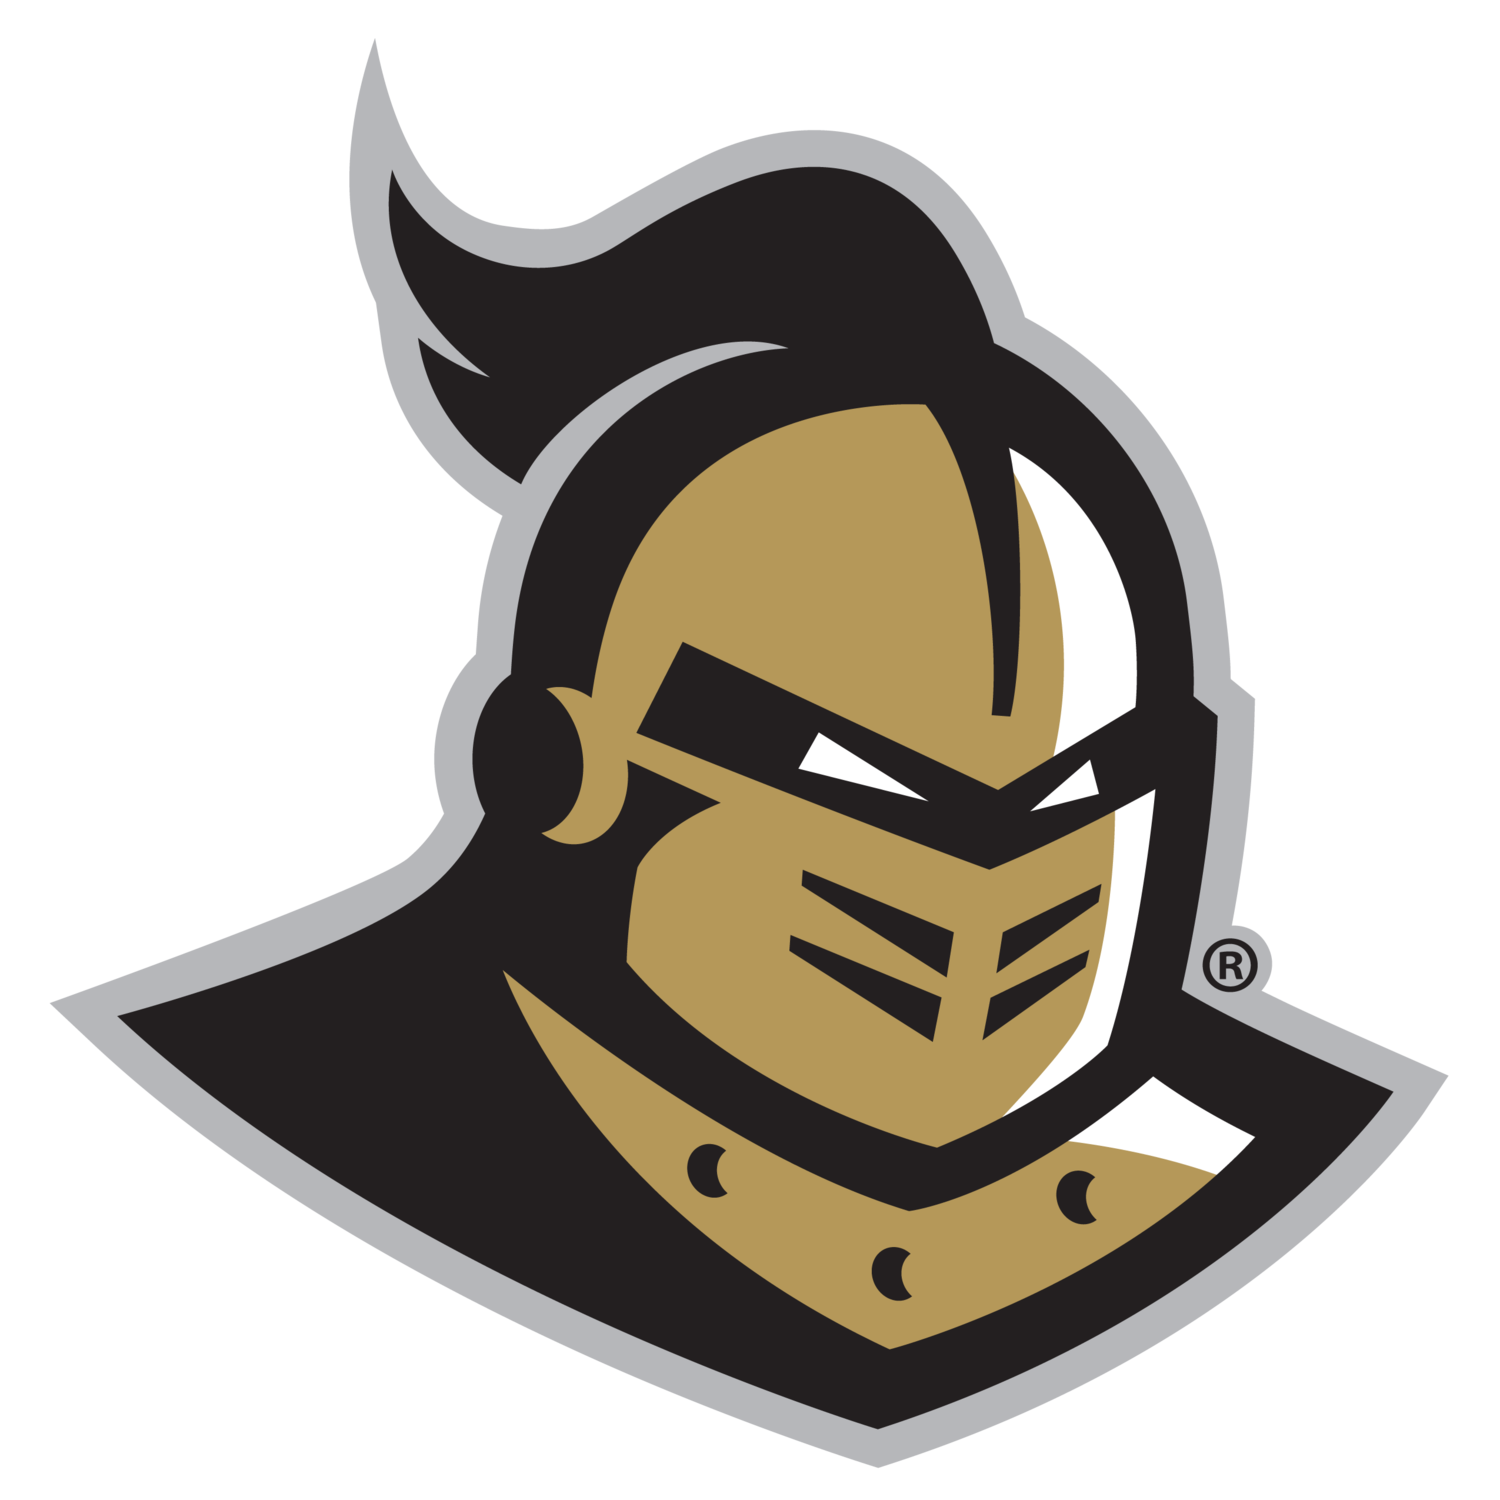 Knight clipart face knight. Head free download best